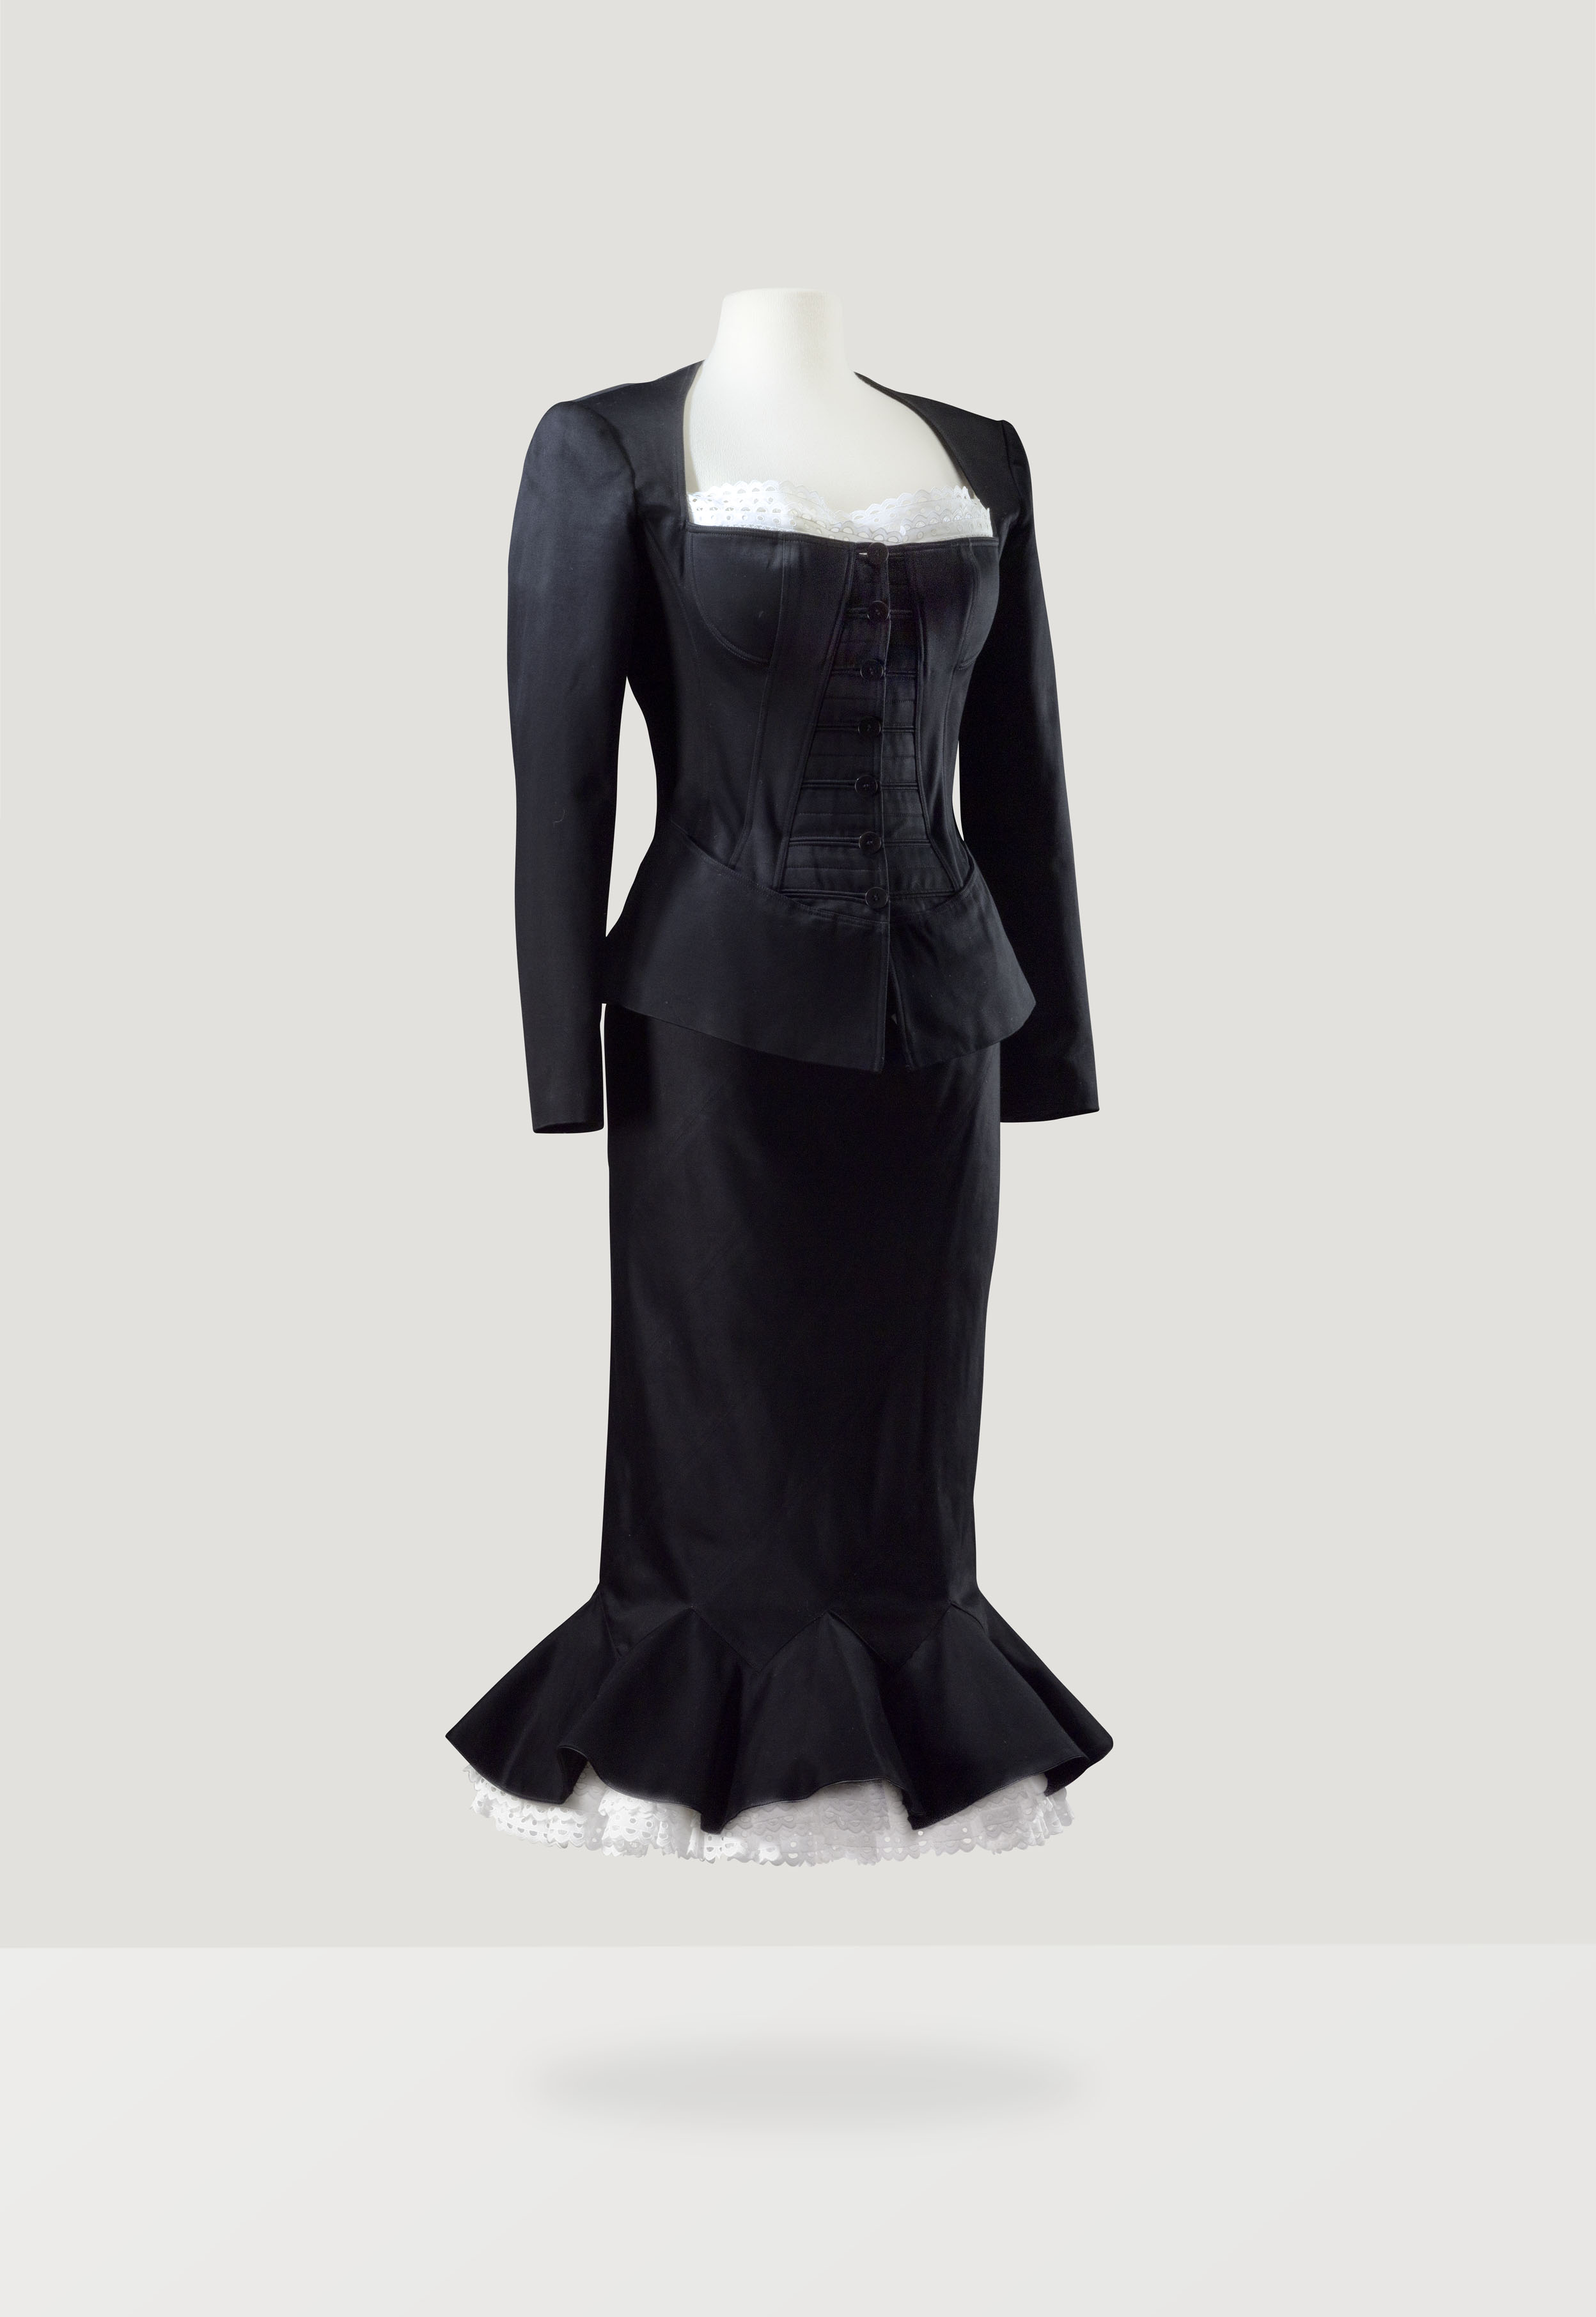 asvof-2015-03-13-every_dress_tells_a_story_couture_from_the_didier_ludot_collection_auction_at_sotheby039s_paris_july_8th-diane_pernet-715913120.jpg